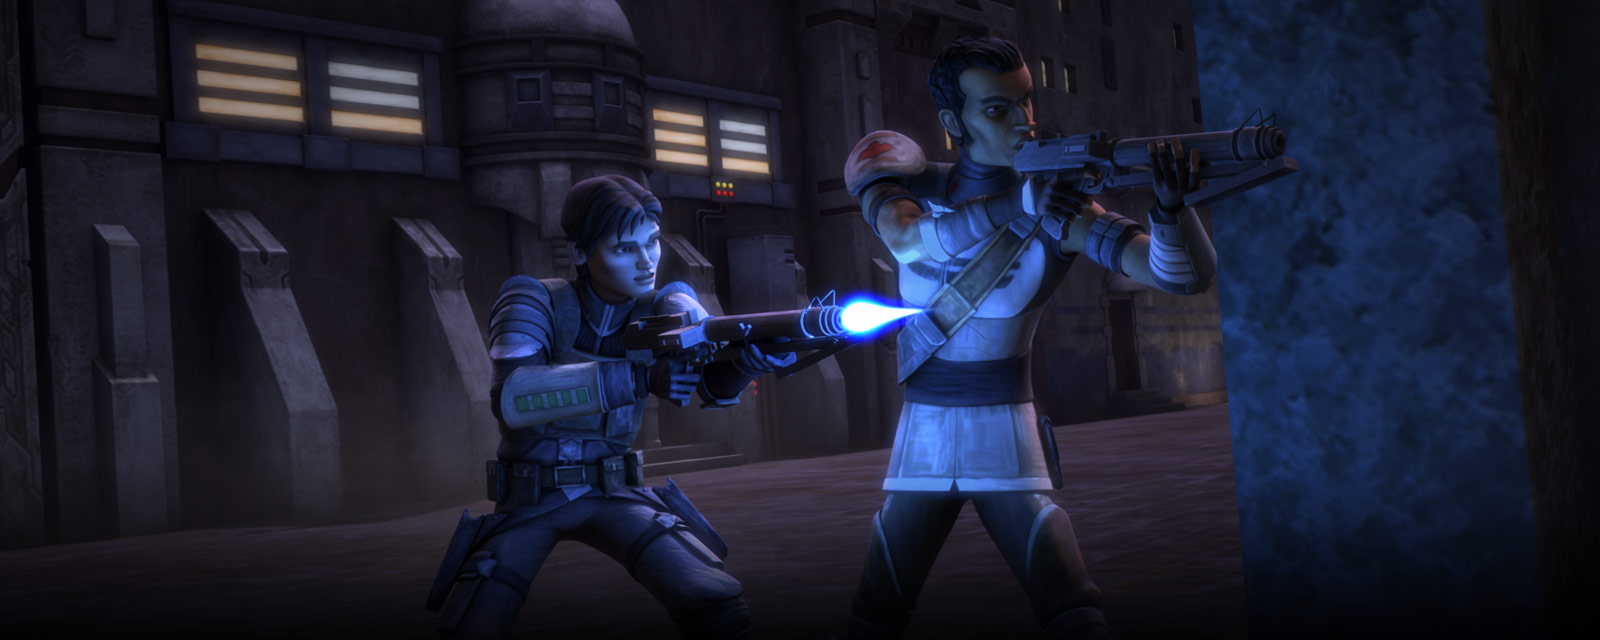 Star Wars: The Clone Wars - February 21st